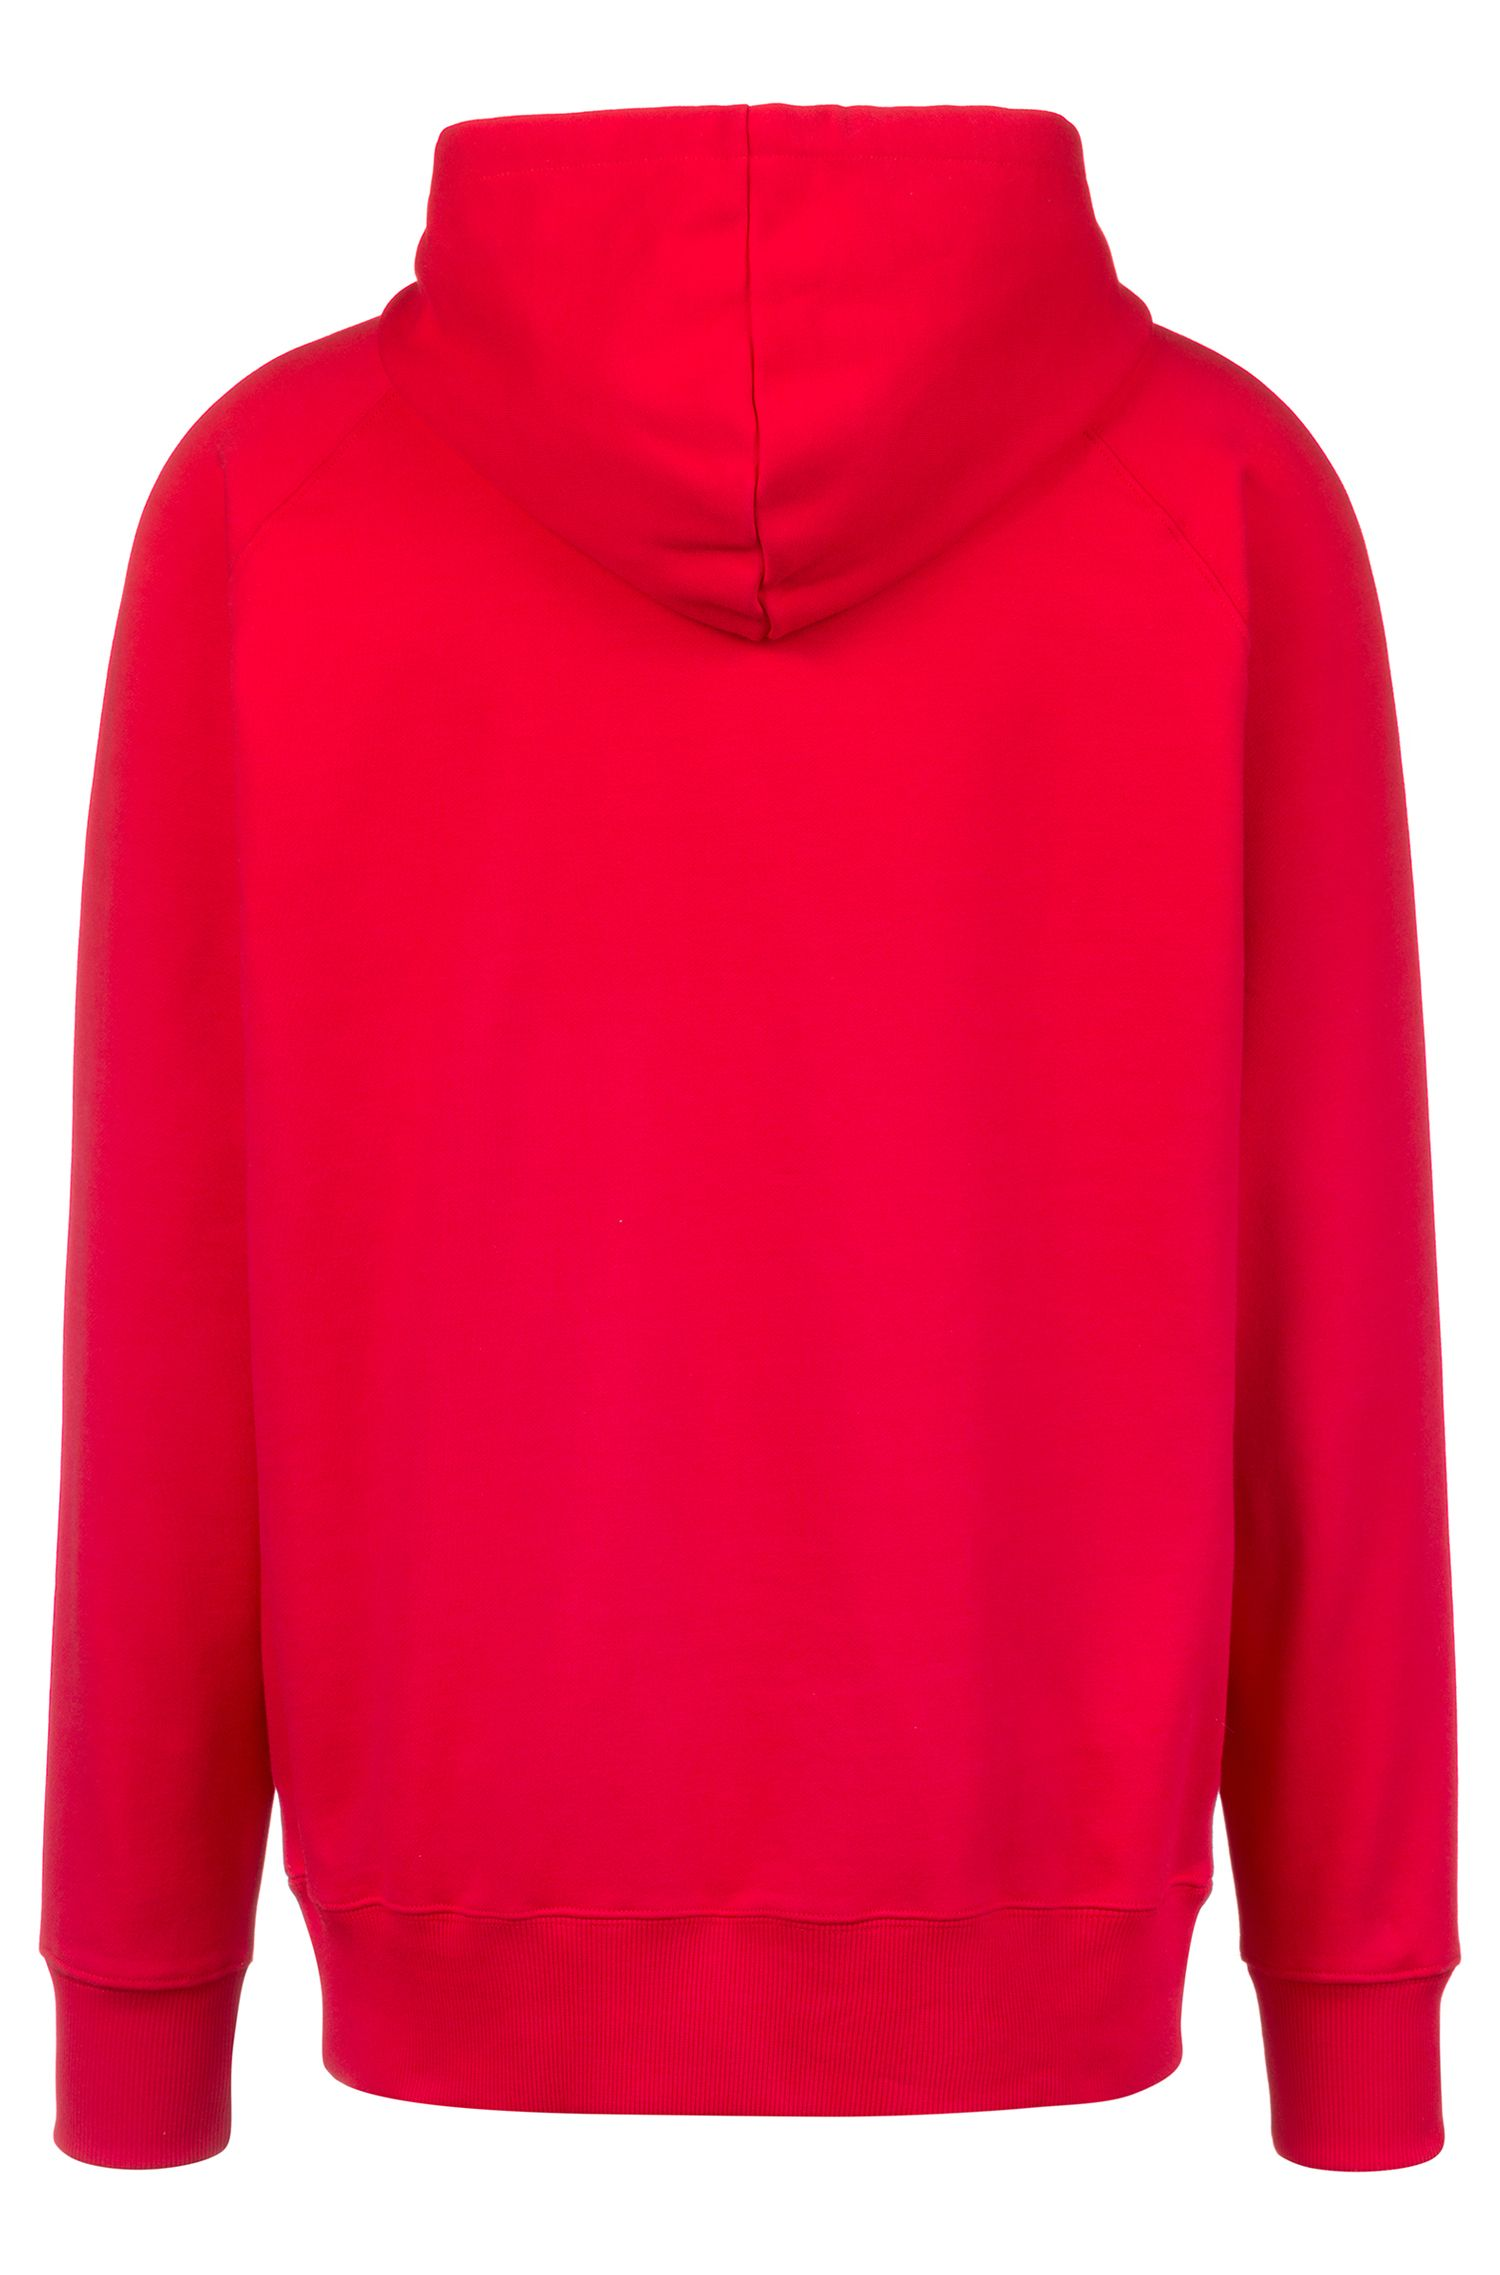 Sweat à capuche mixte Oversized Fit à imprimé emblématique de la collection, Rouge